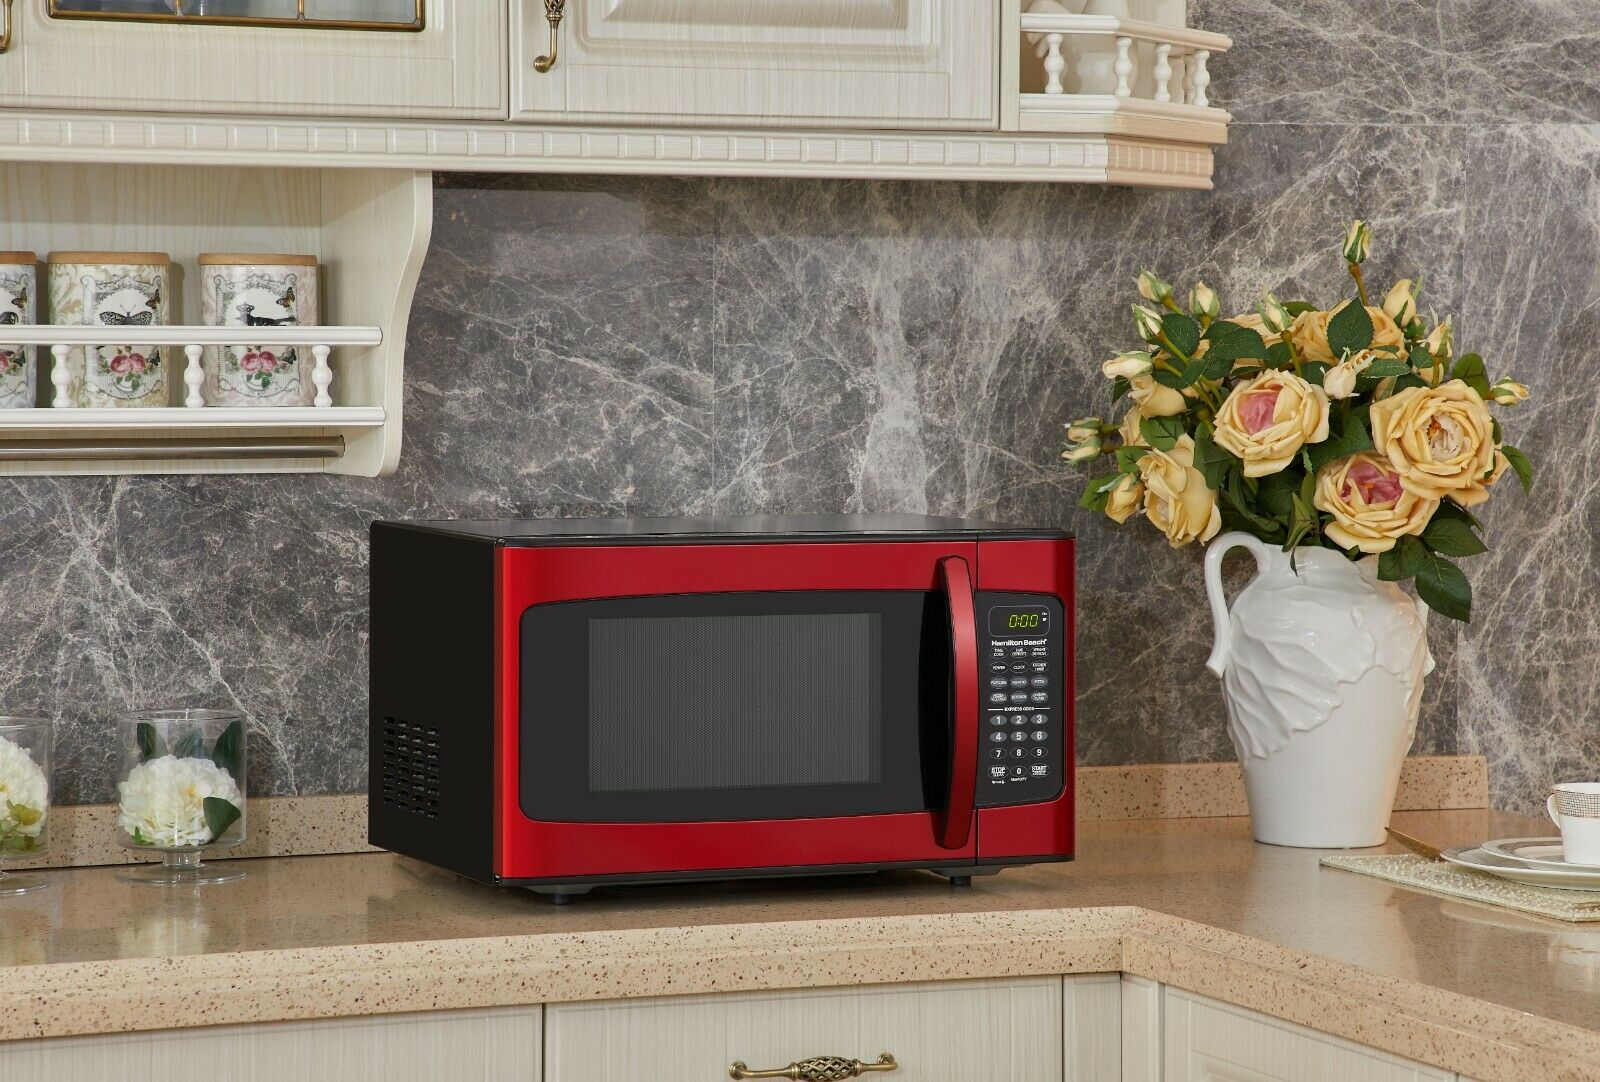 Red Countertop Steel Microwave Stainless Oven Sharp LED Disp